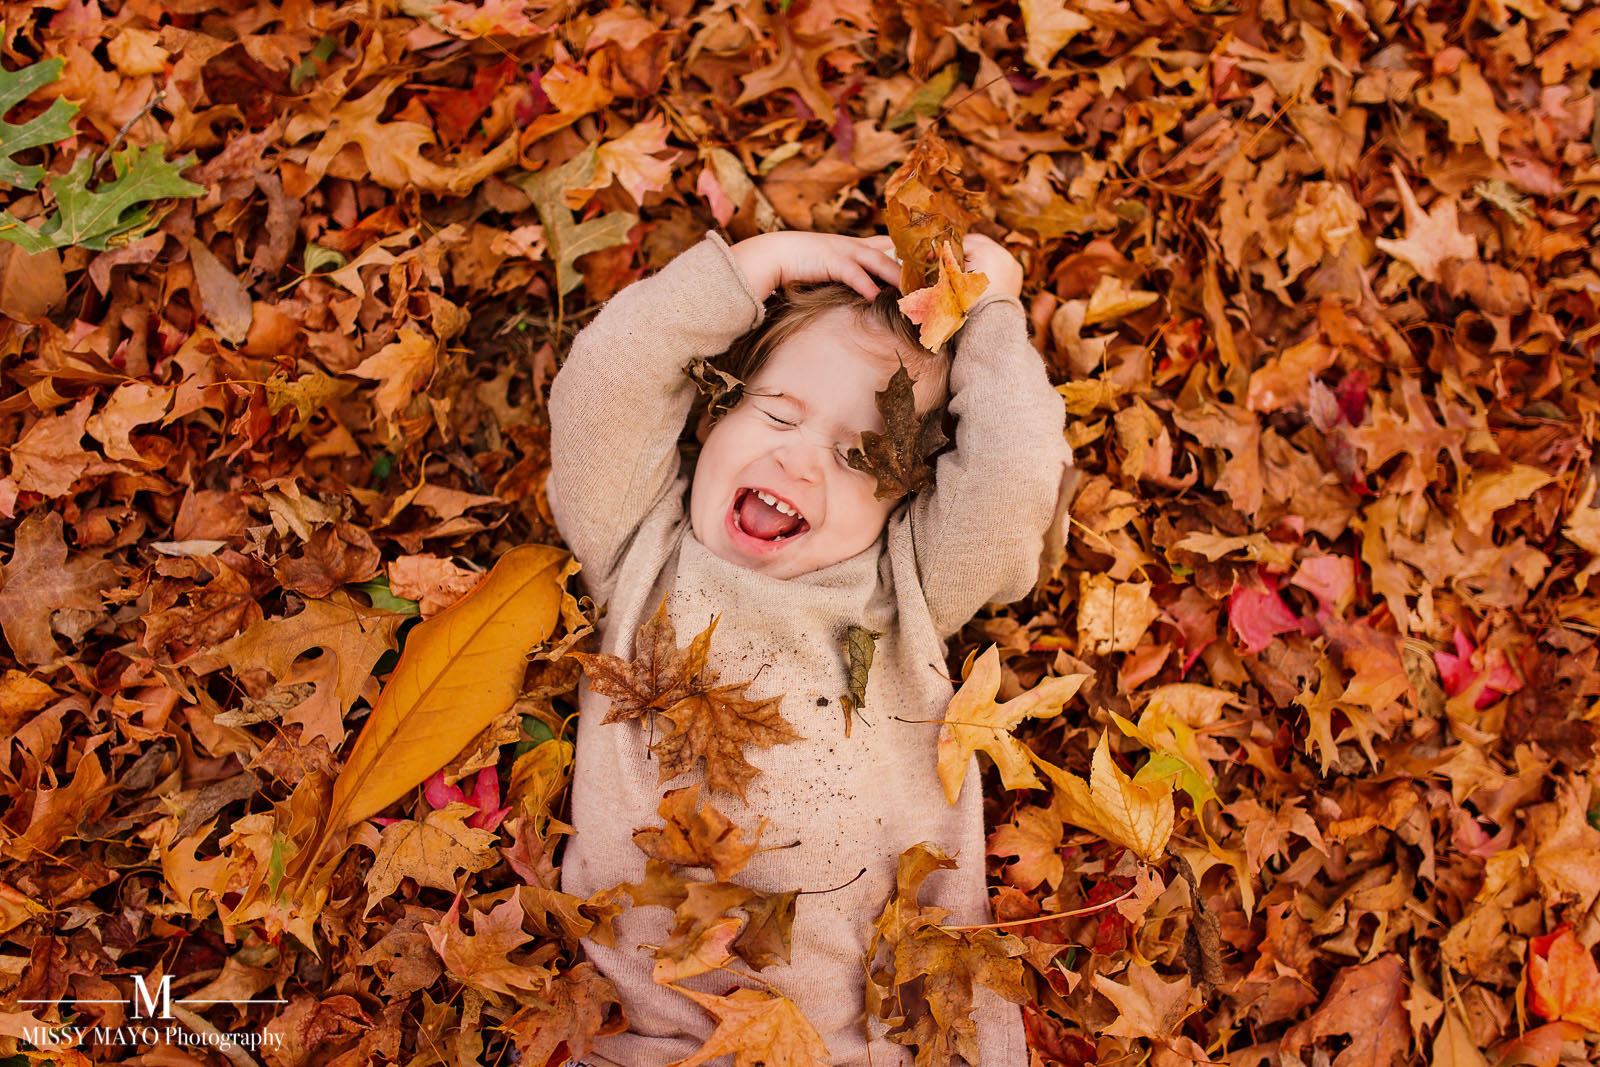 baby in a leaf pile by Missy Mayo